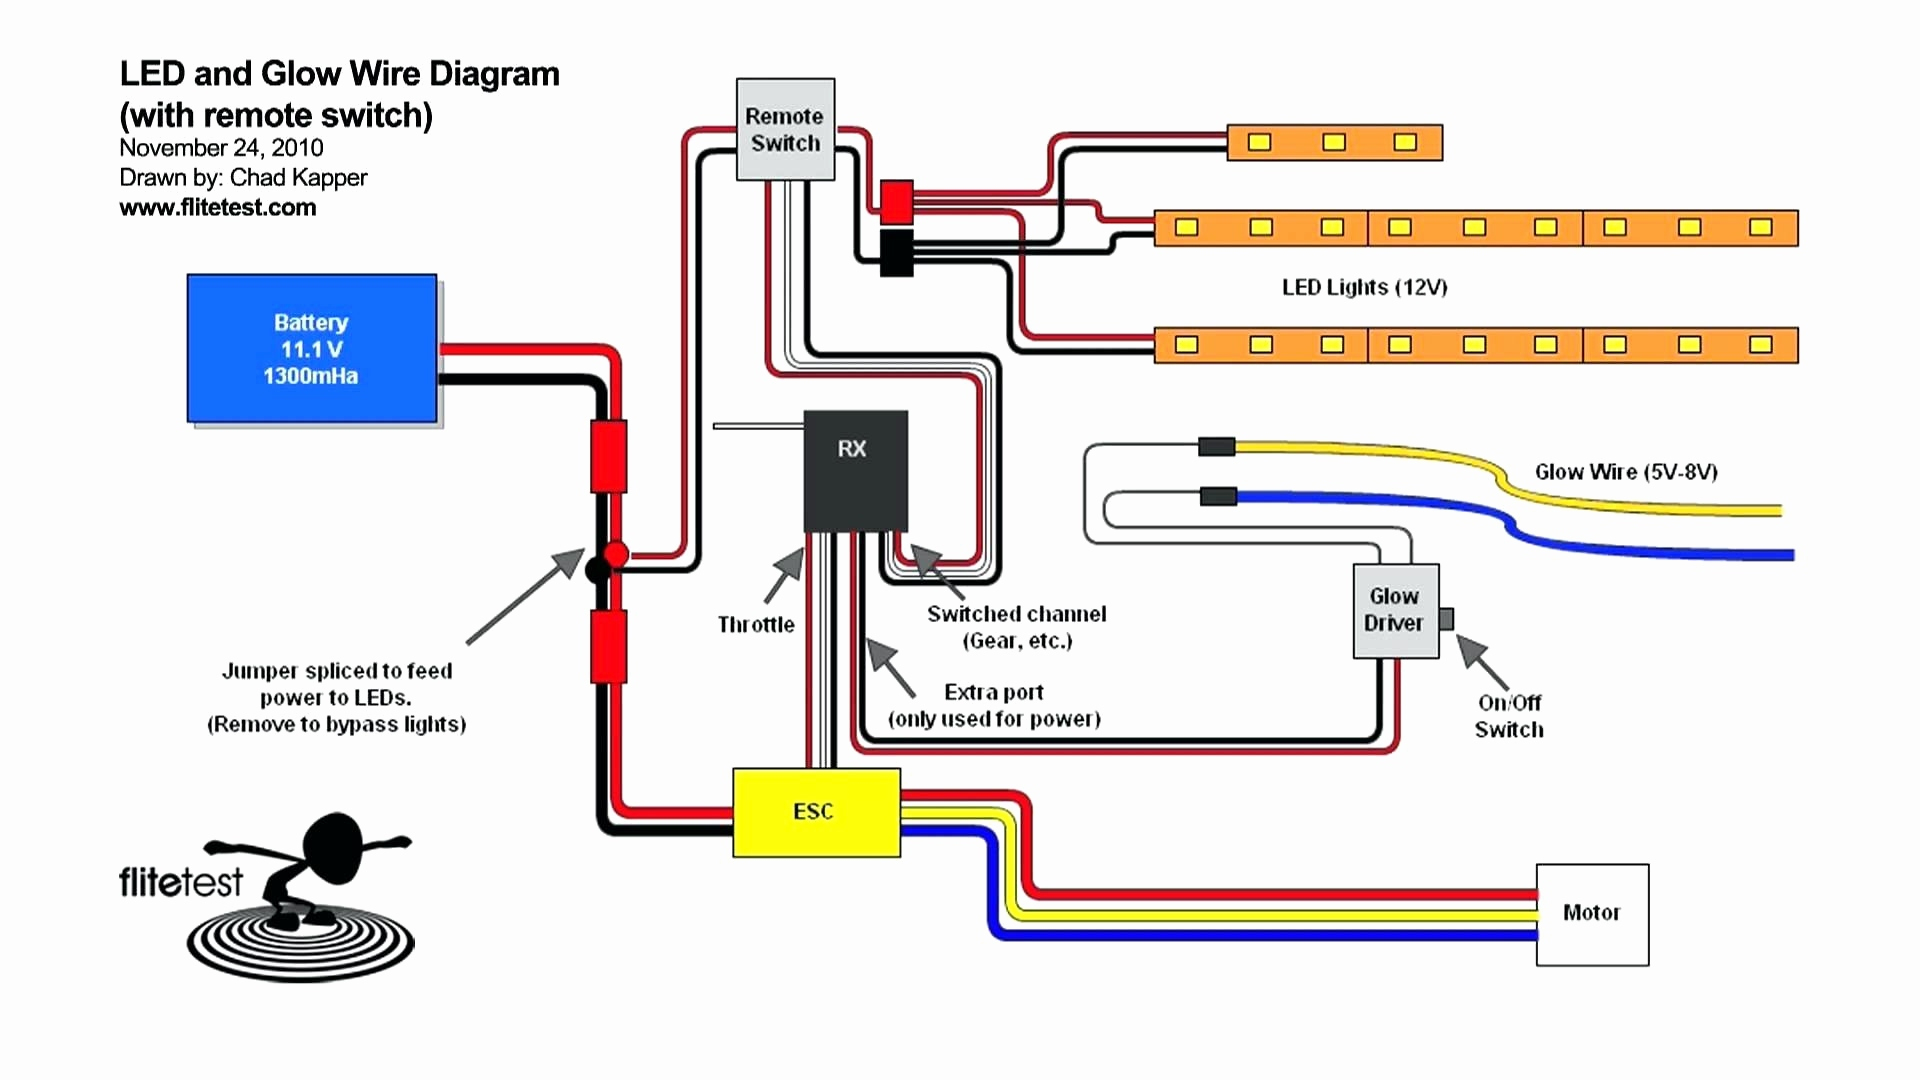 Led Light 12V 3 Wire Wiring Diagram | Wiring Diagram - Led Trailer Lights Wiring Diagram